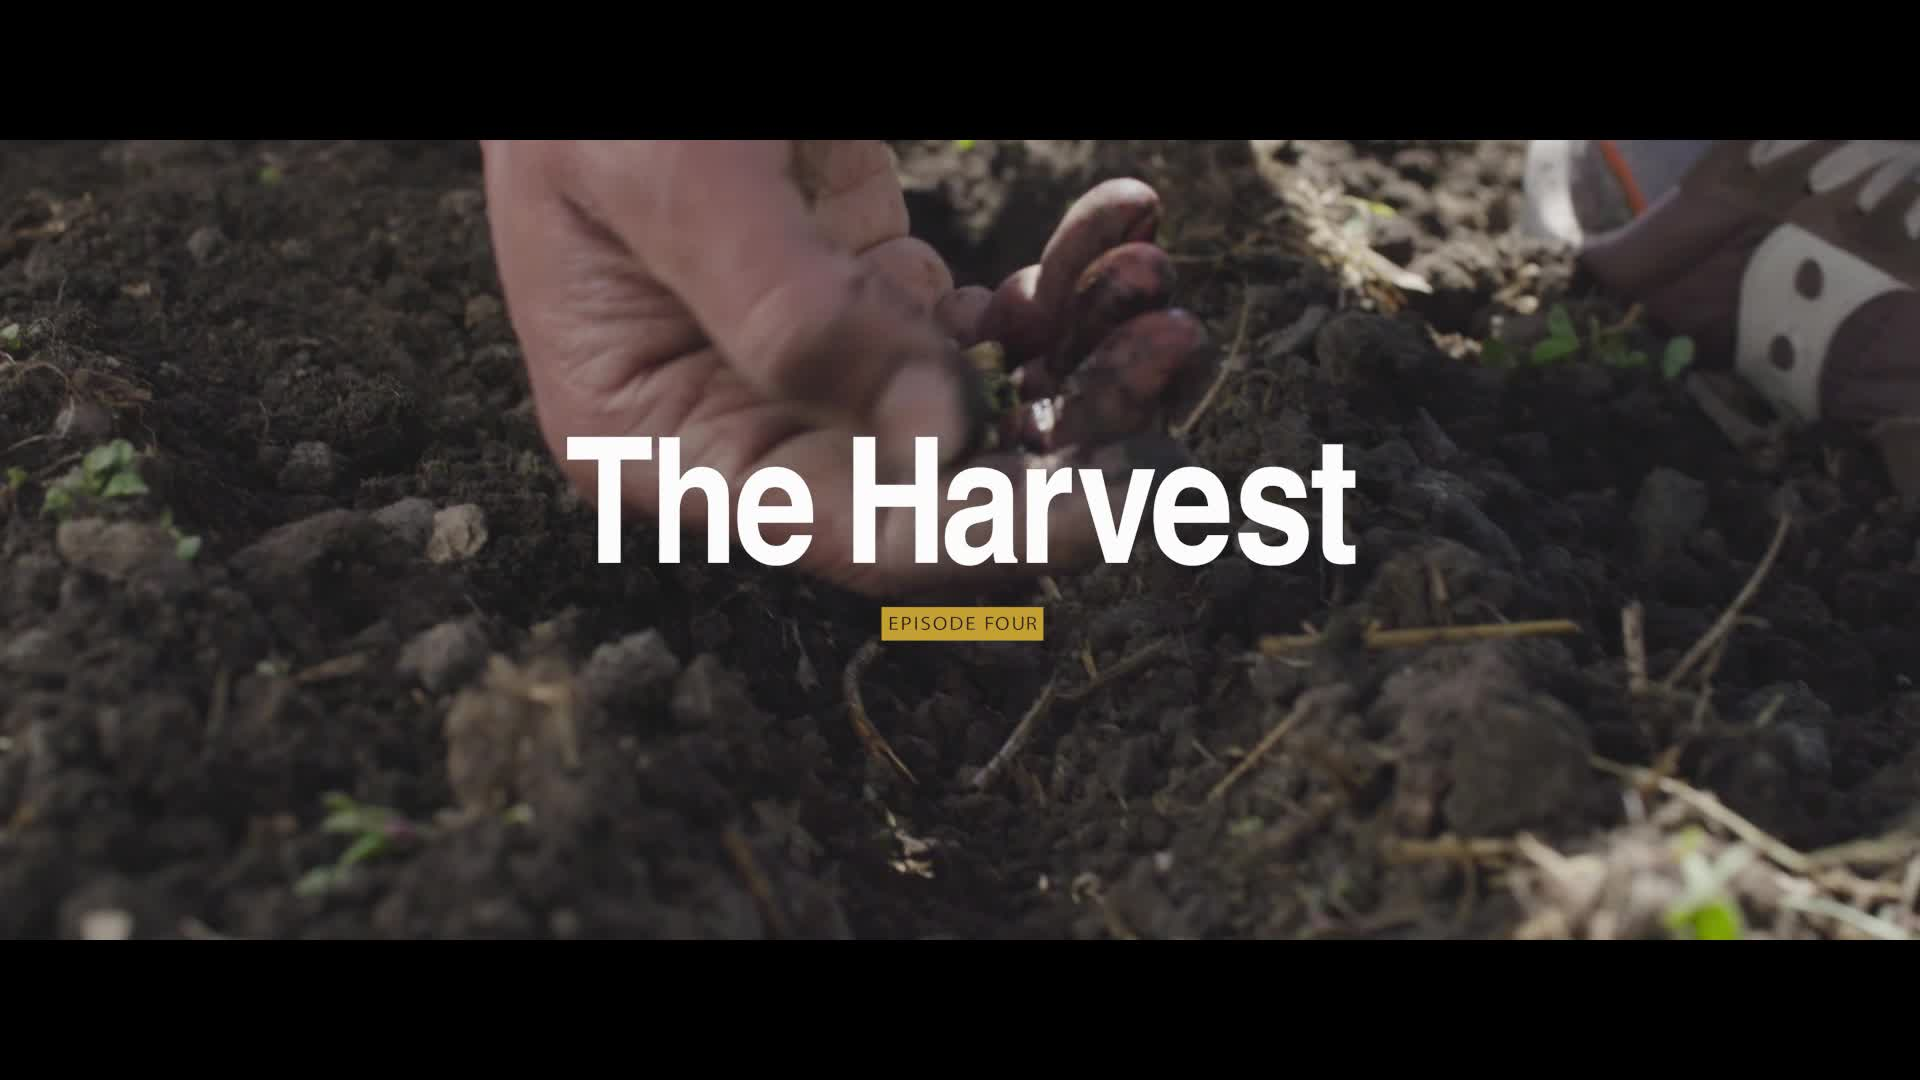 Five years after his near-death experience, Chef Eduardo Garcia is back in his home state of Montana and starring in The Harvest, the forth short film in The Sky's the Limit video series.